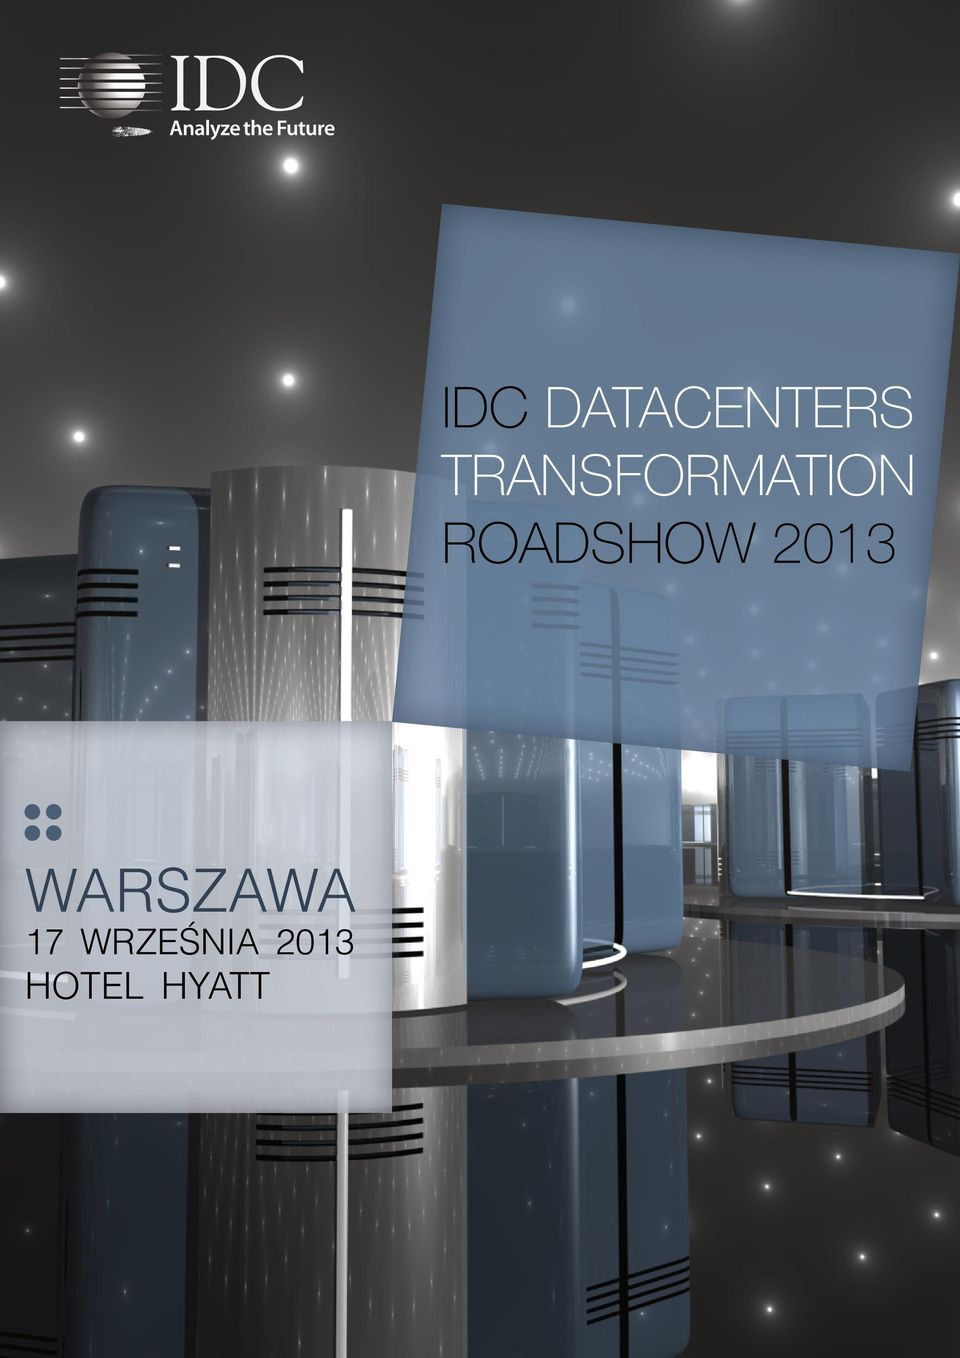 ROADSHOW 2013